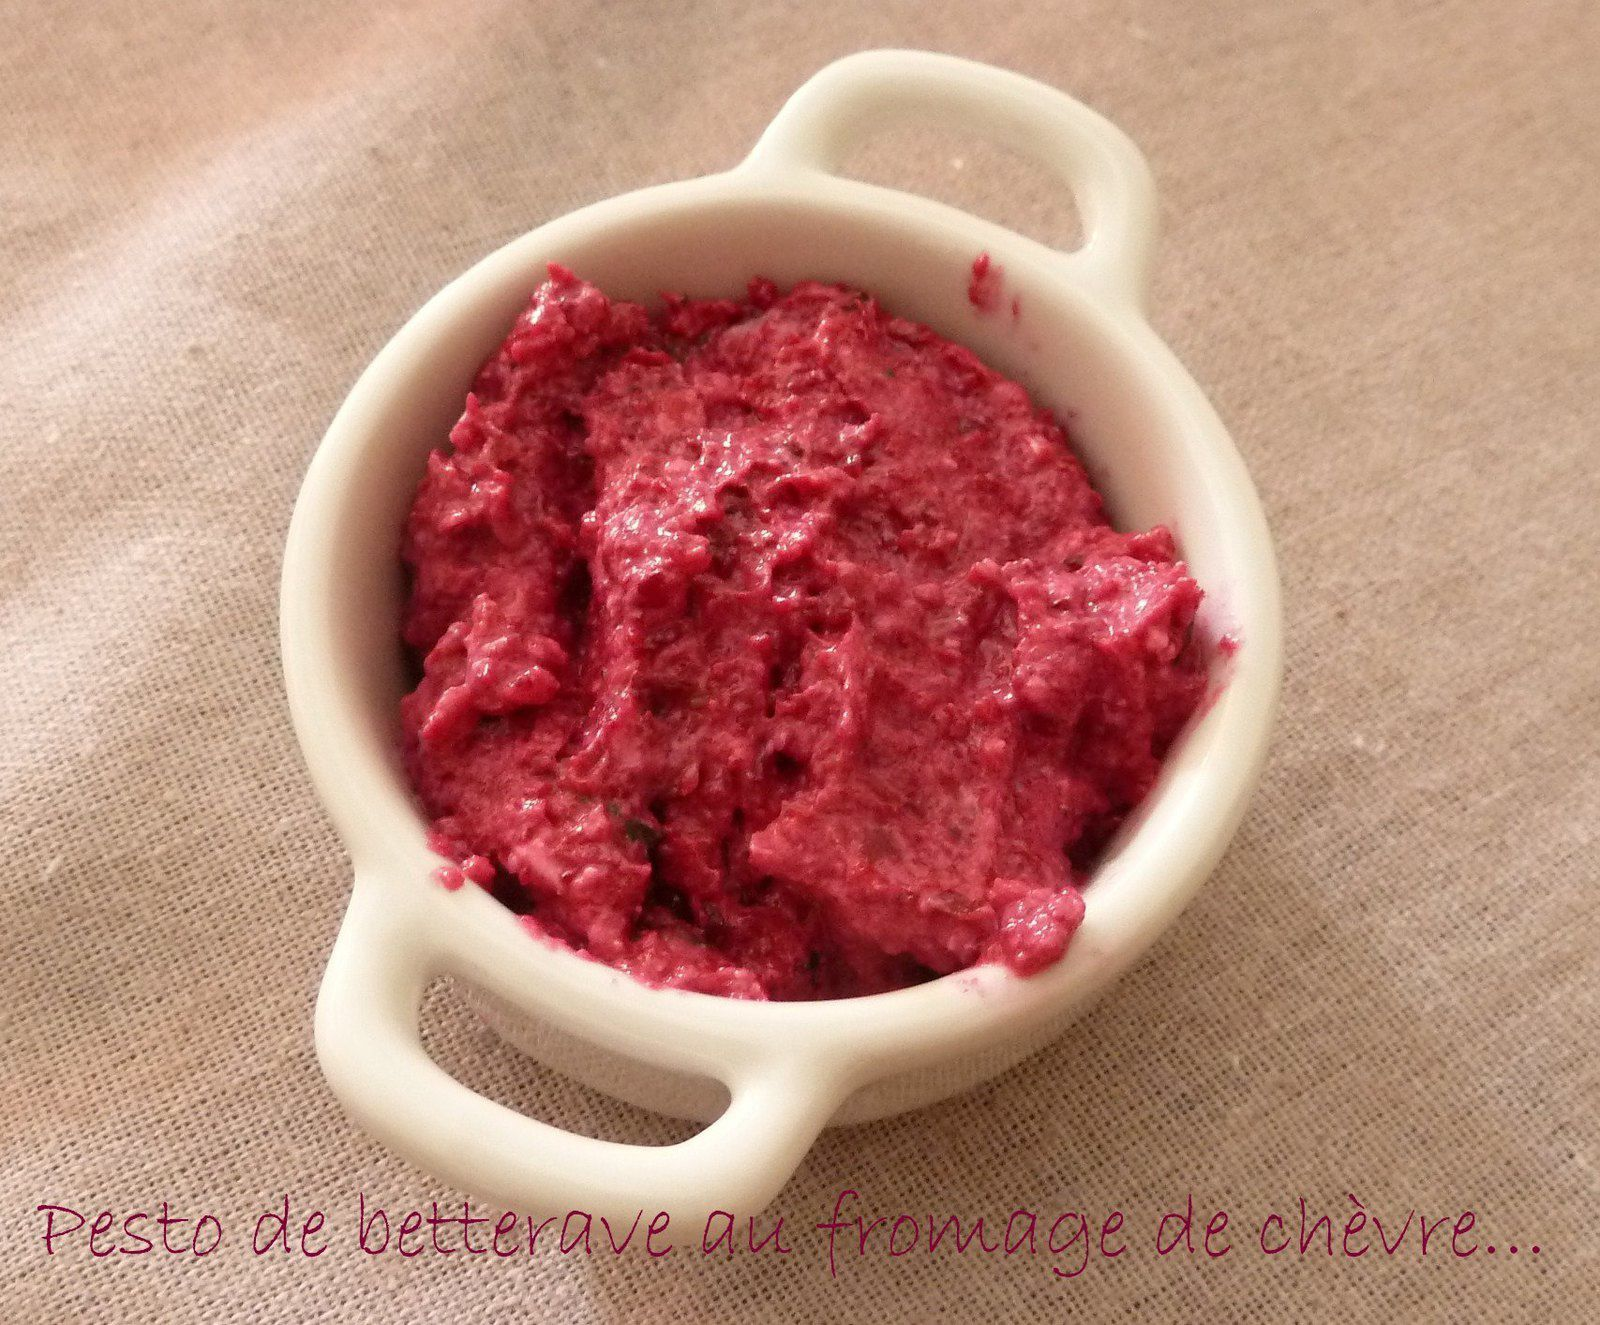 Pesto de betterave